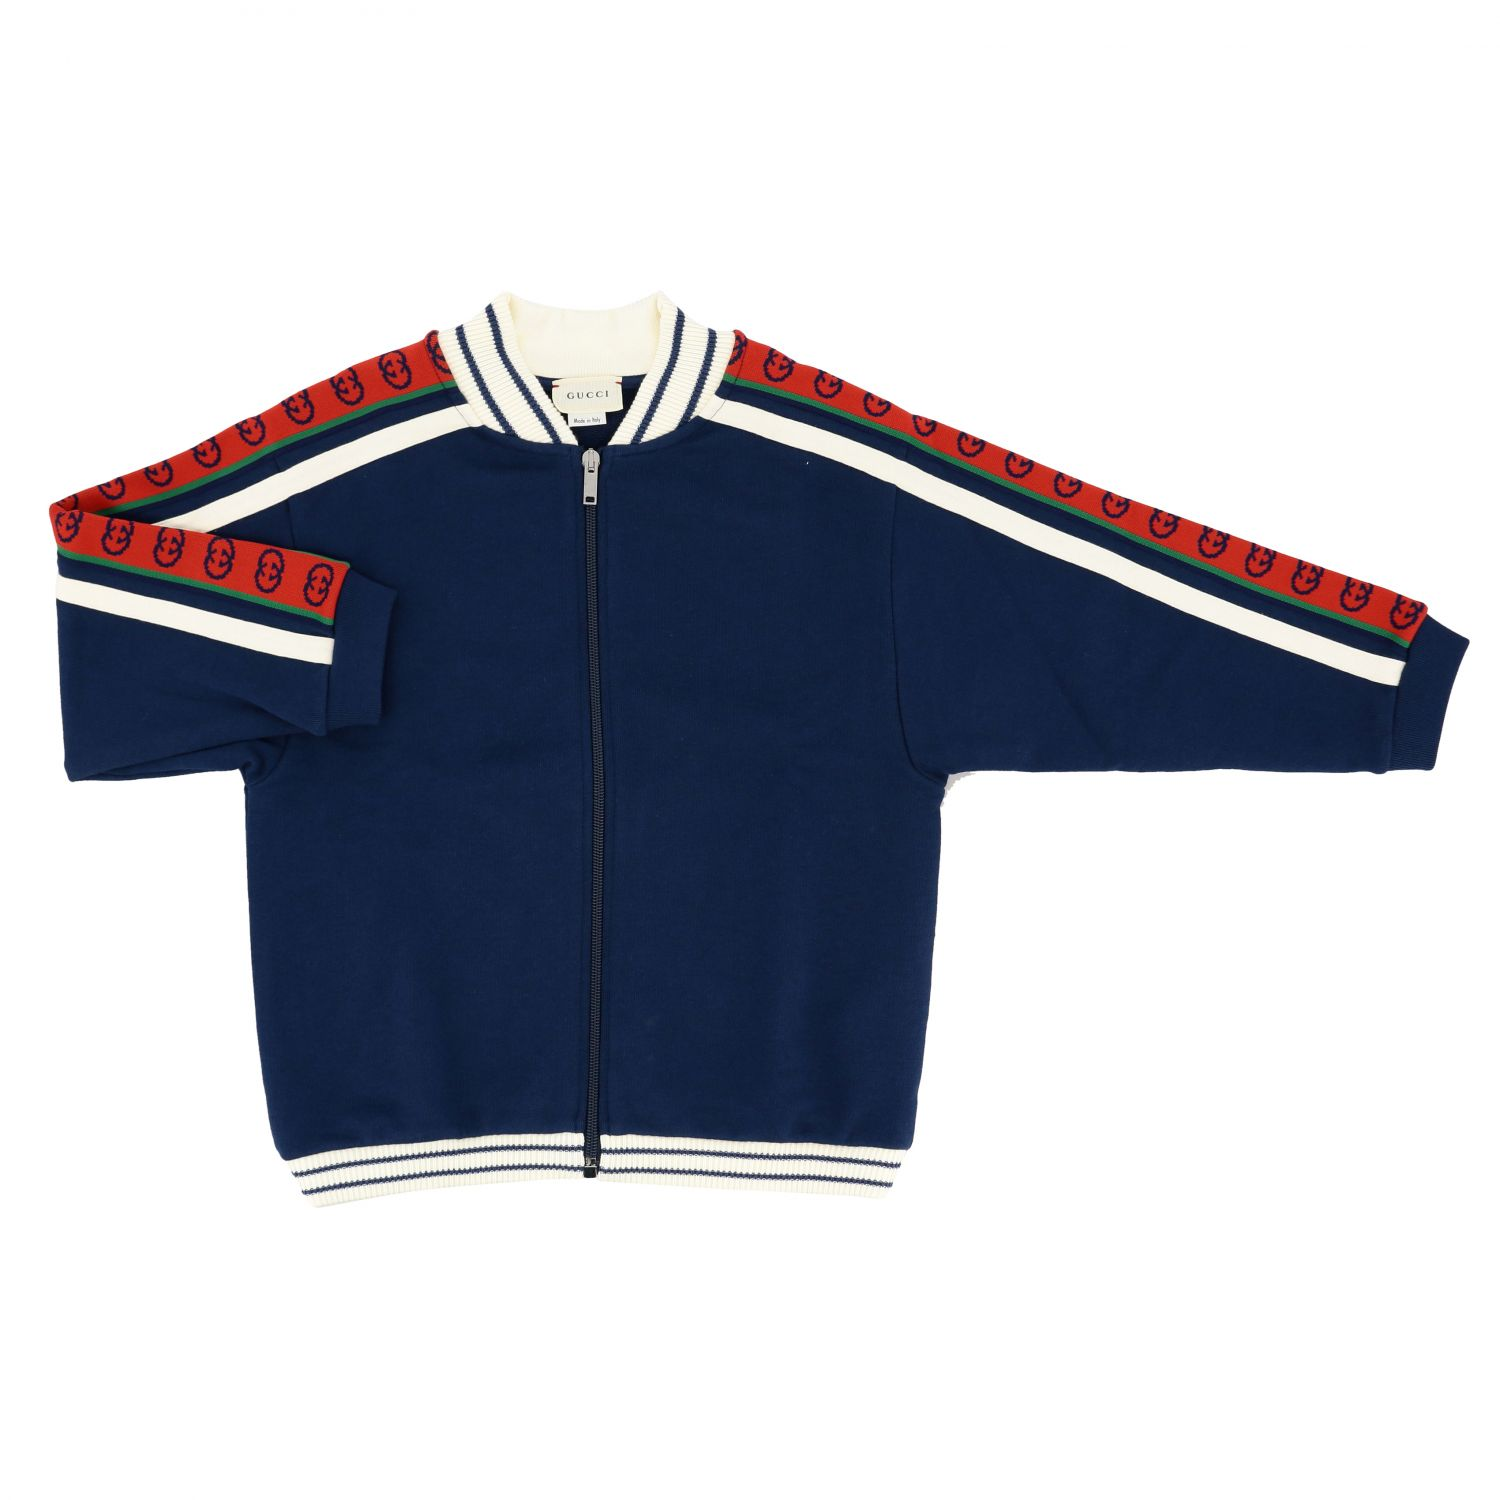 Gucci sweatshirt with logoed bands blue 1